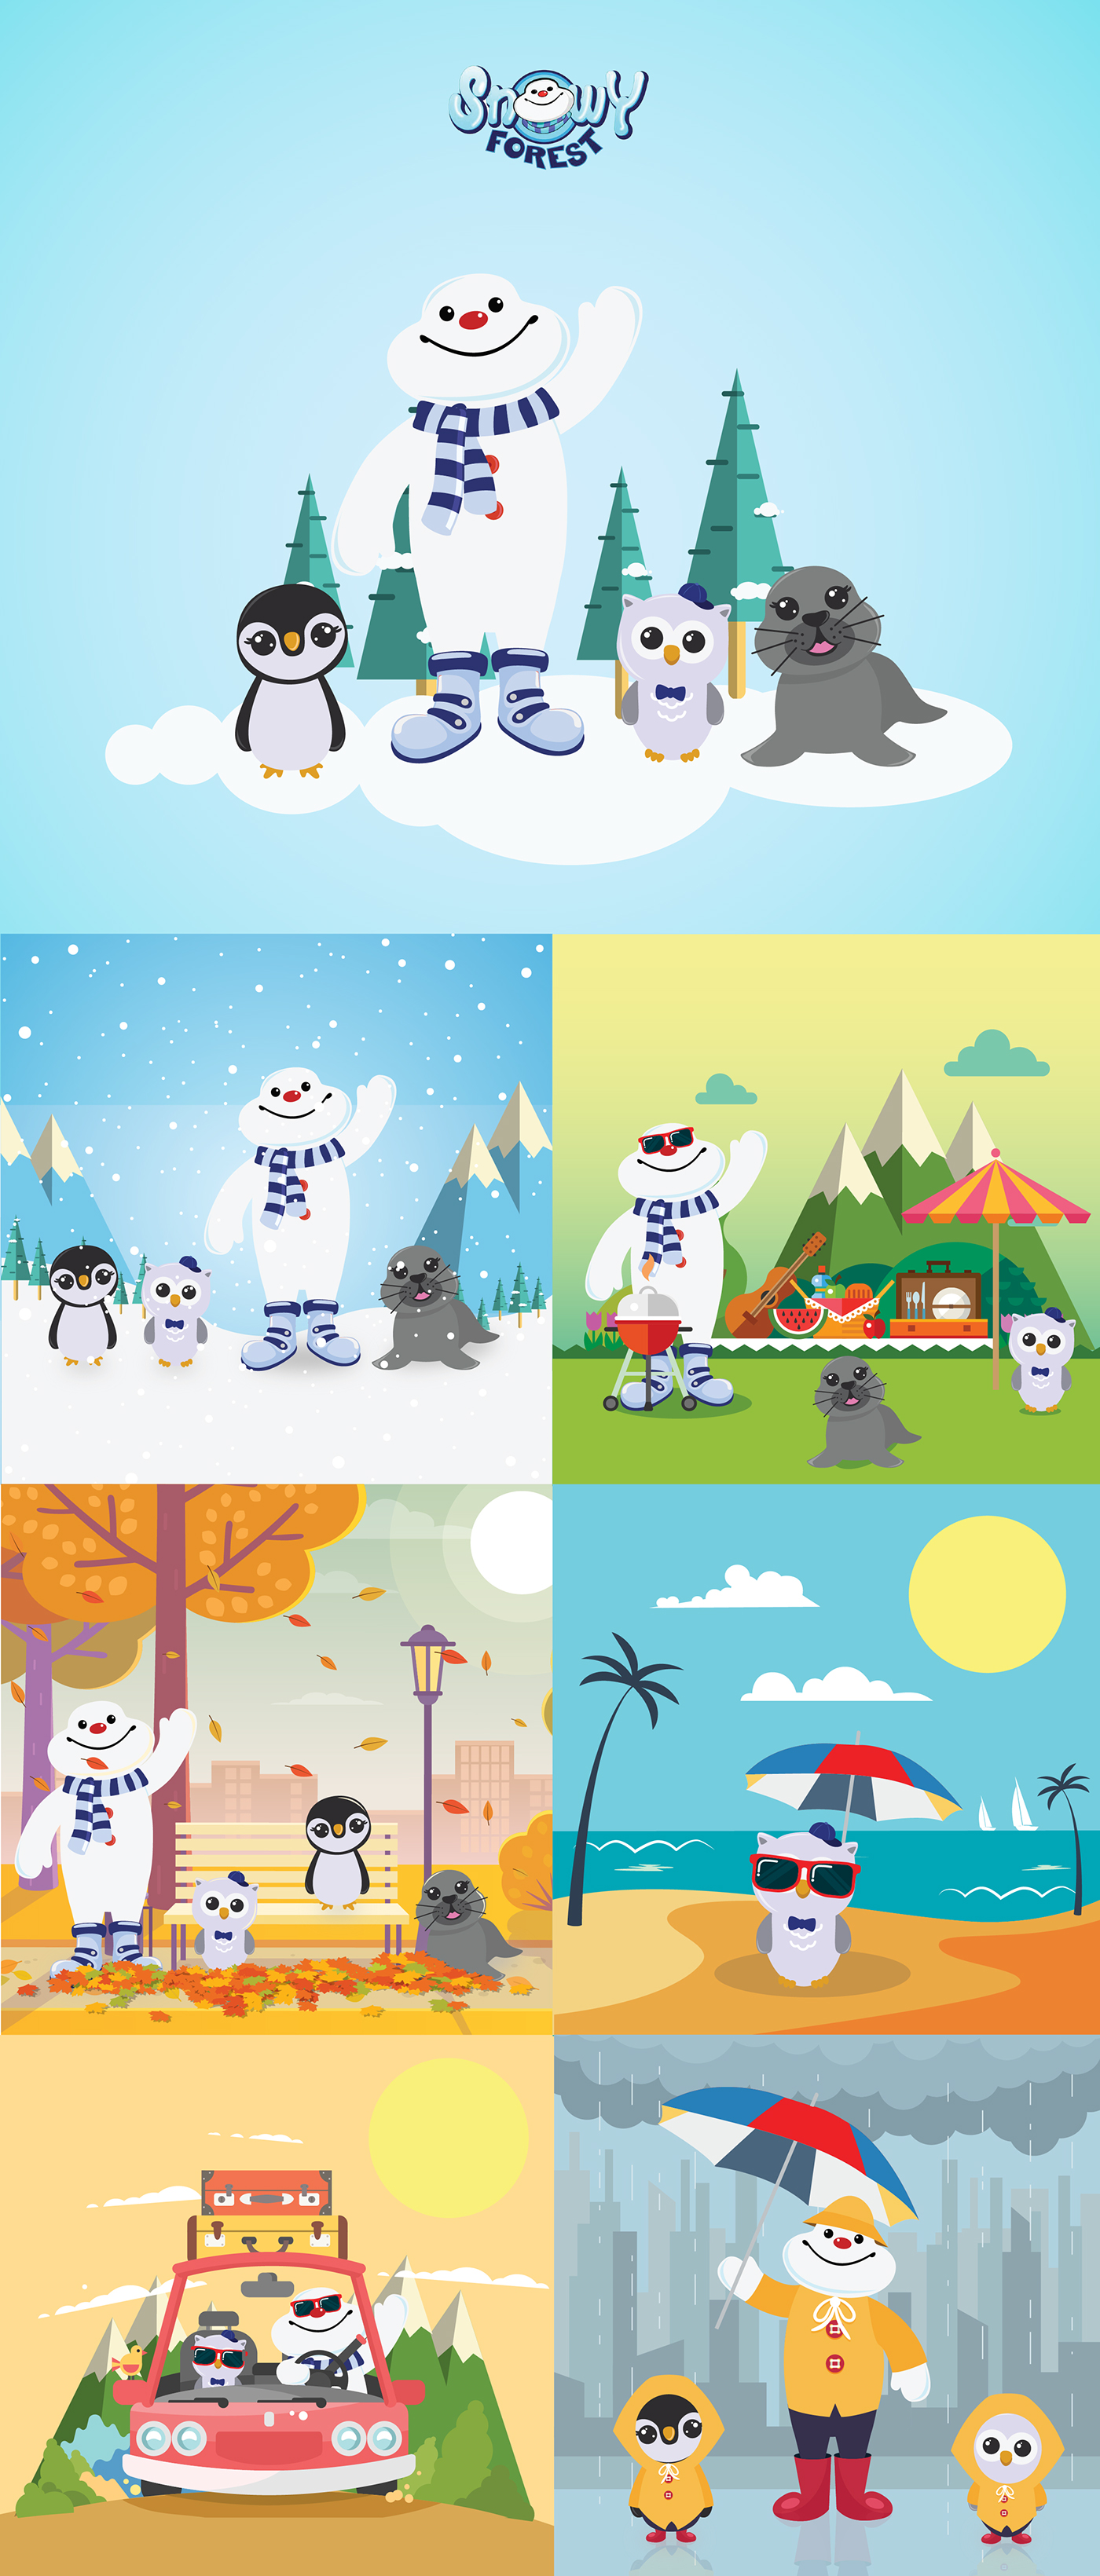 Snowy forest play area soft play area characters deisgn characters snow man